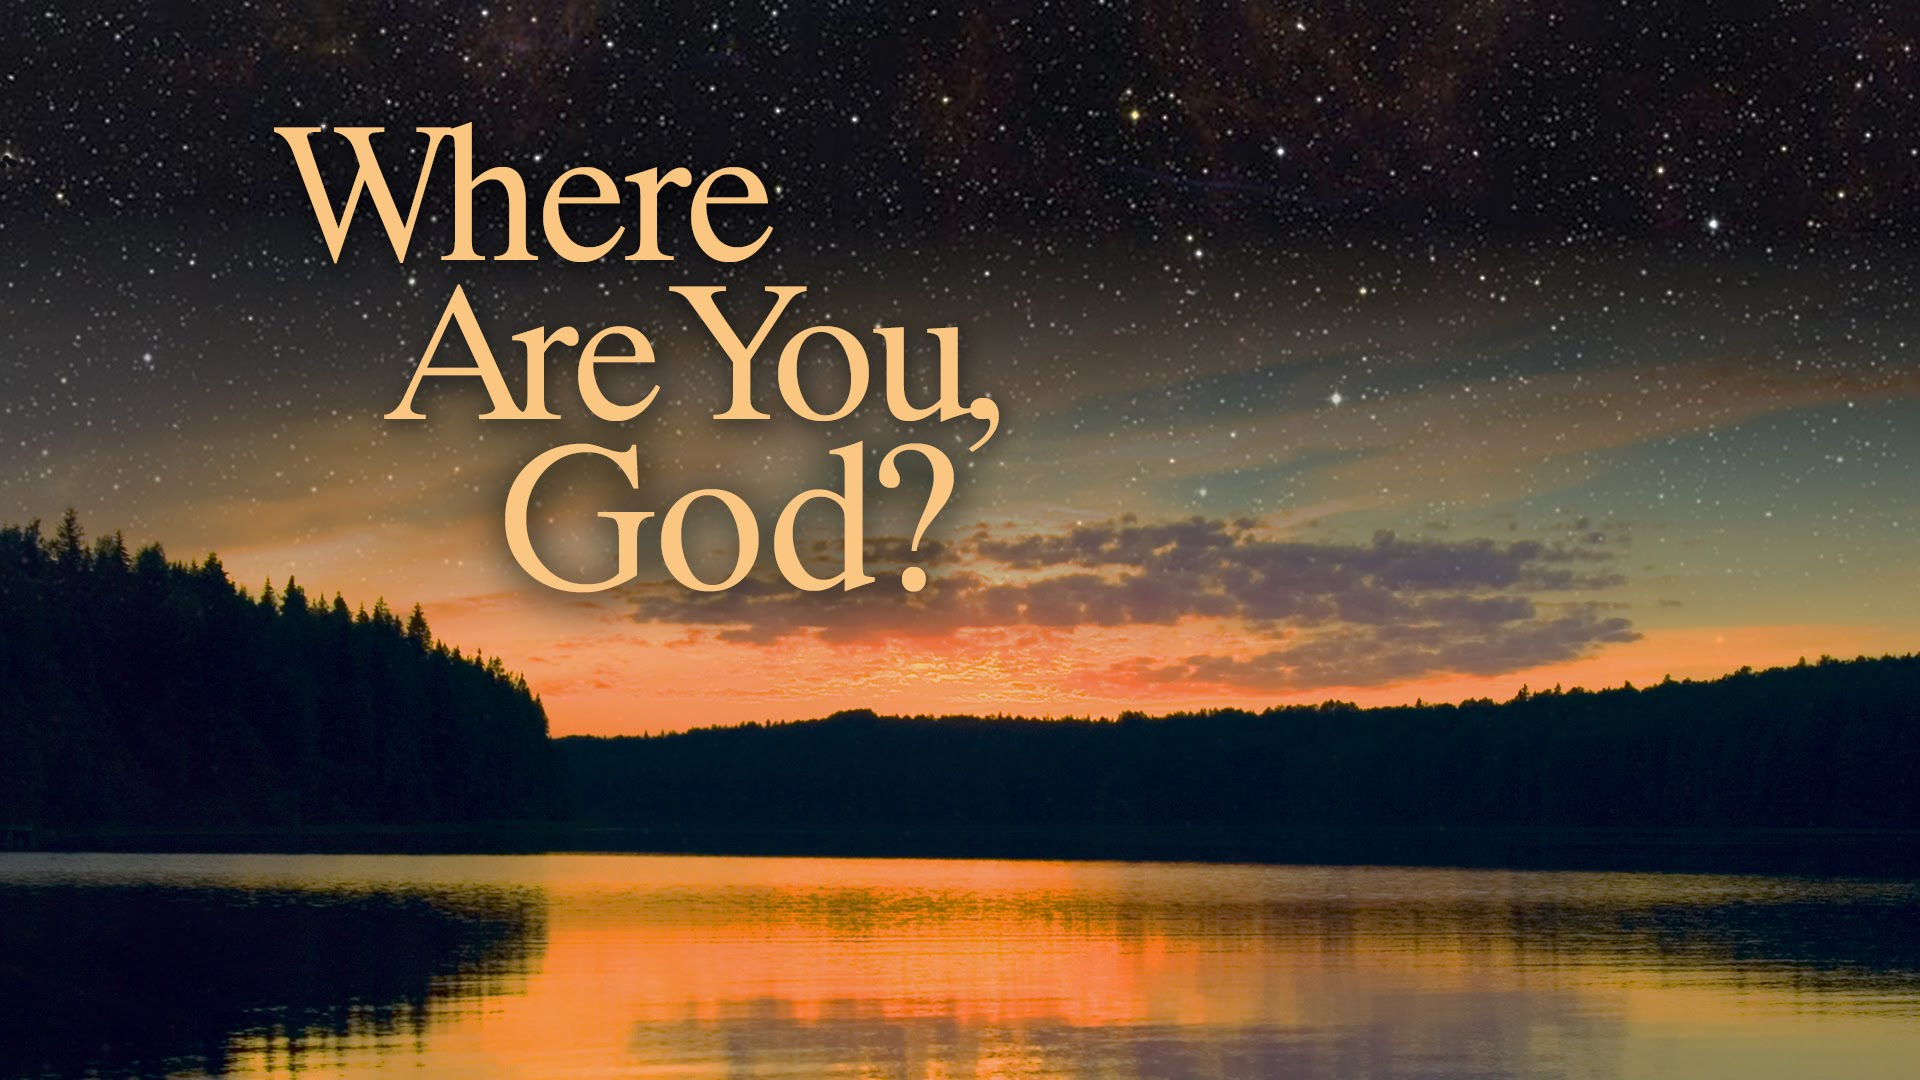 Where Are You God?